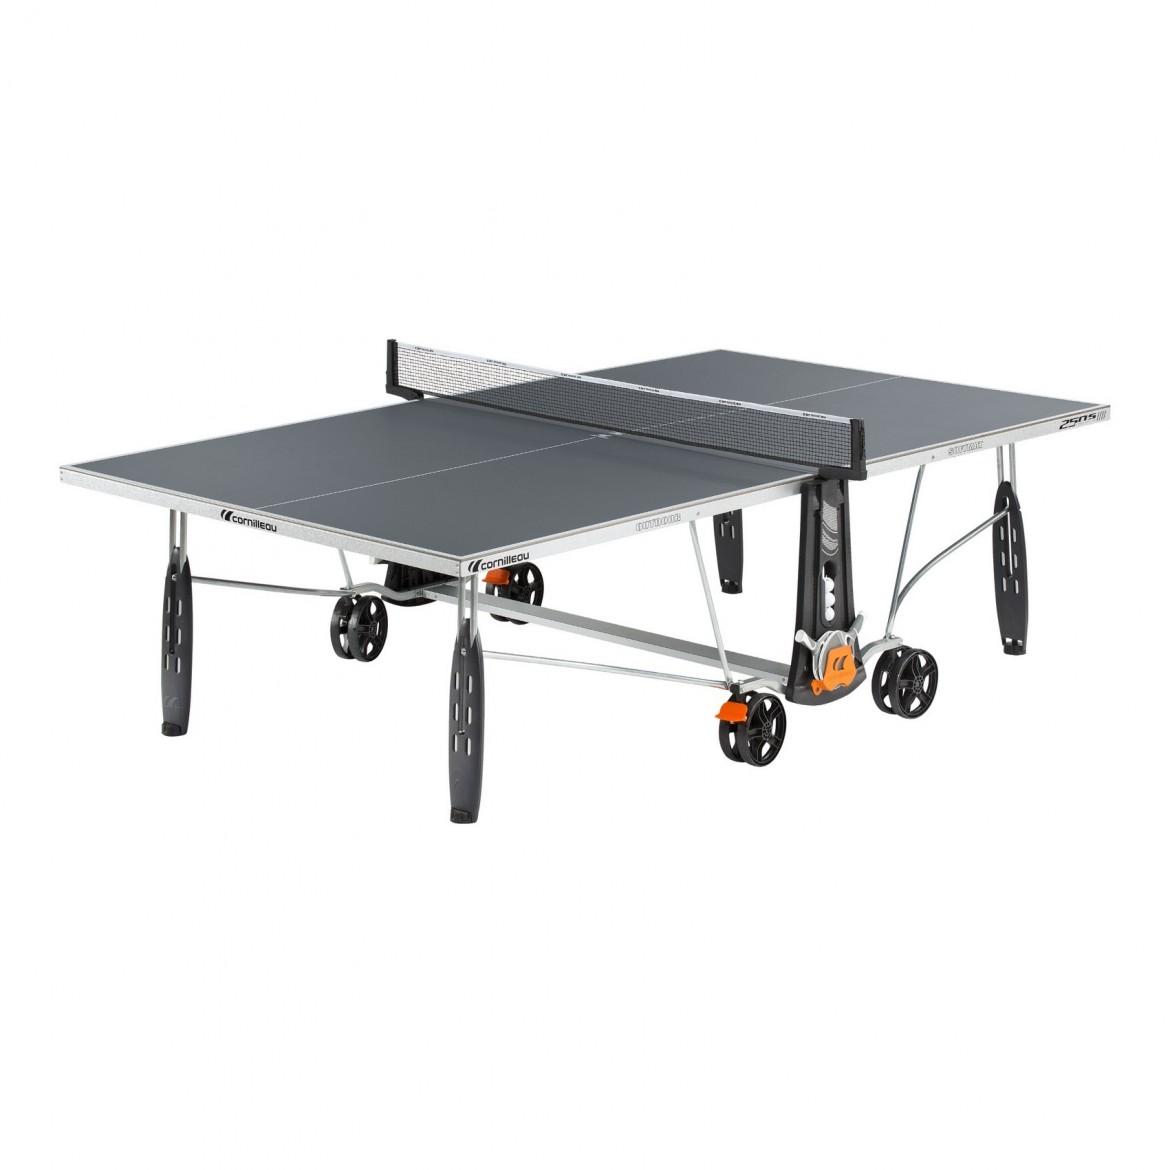 Table tennis table 250S CROSSOVER - Cornilleau